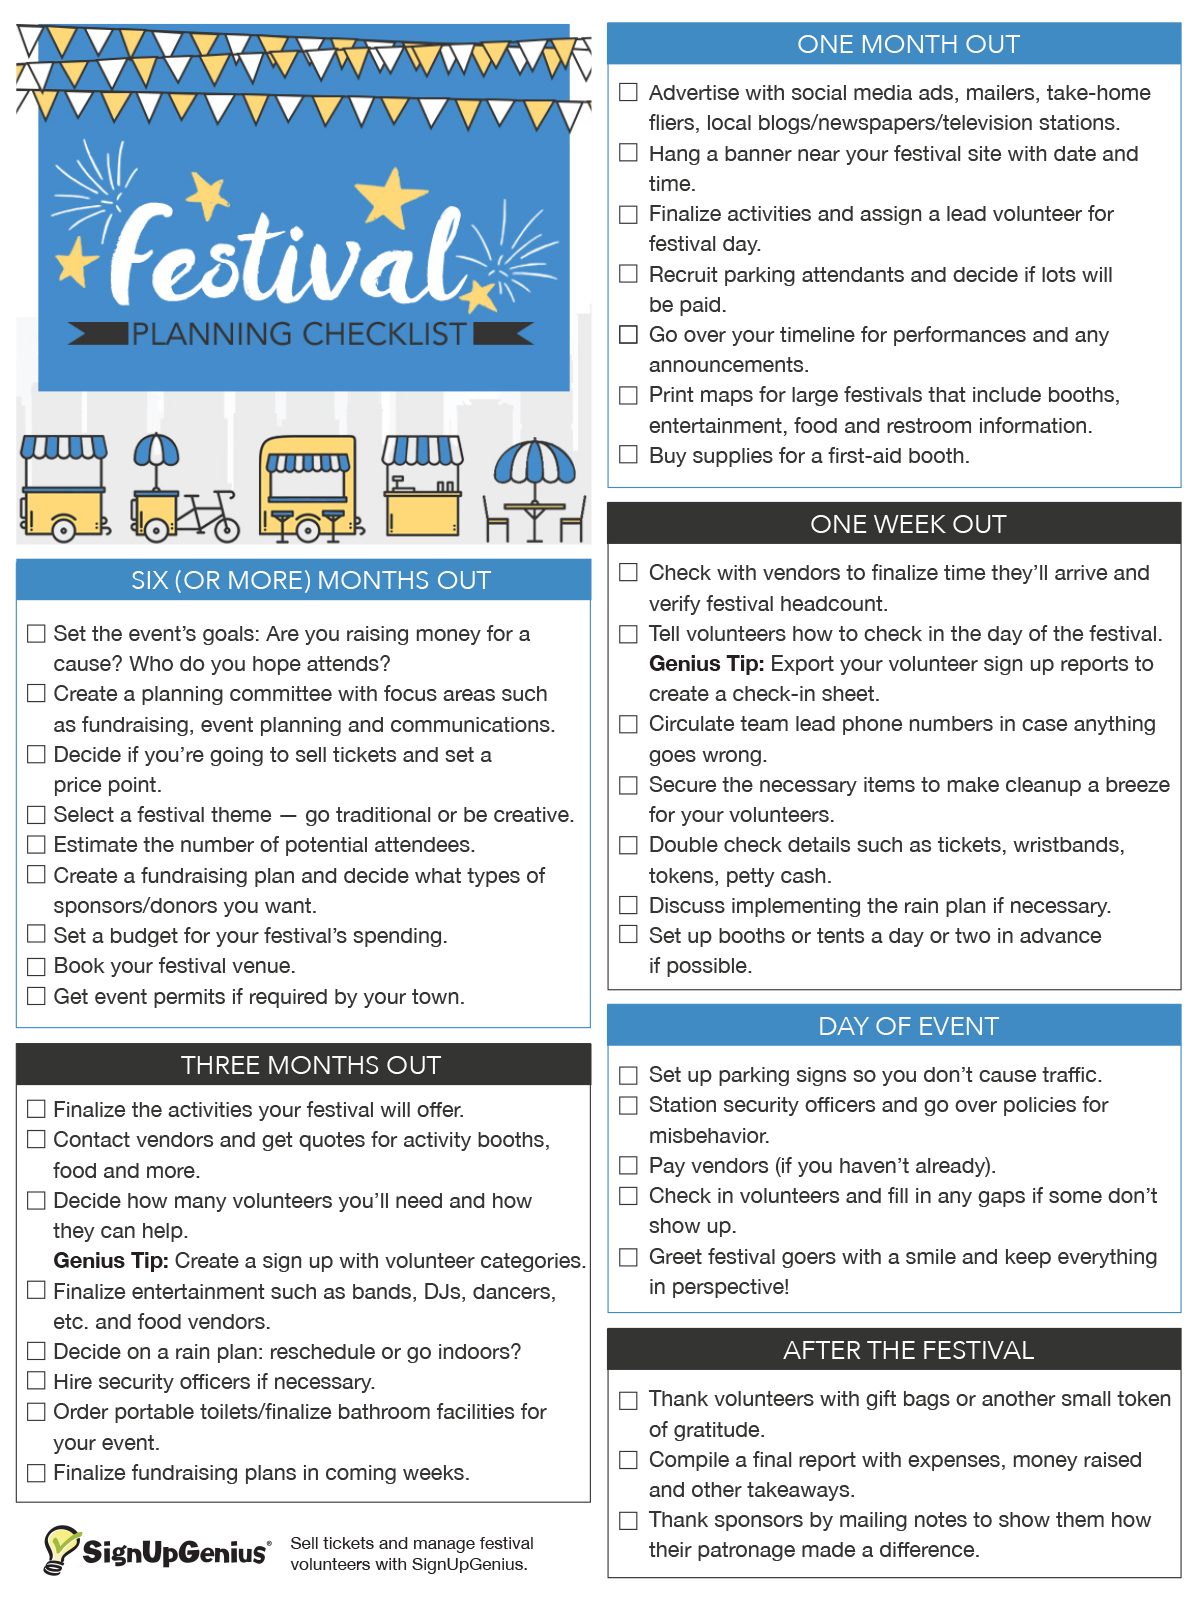 Festival Planning Checklist (With images) Festival